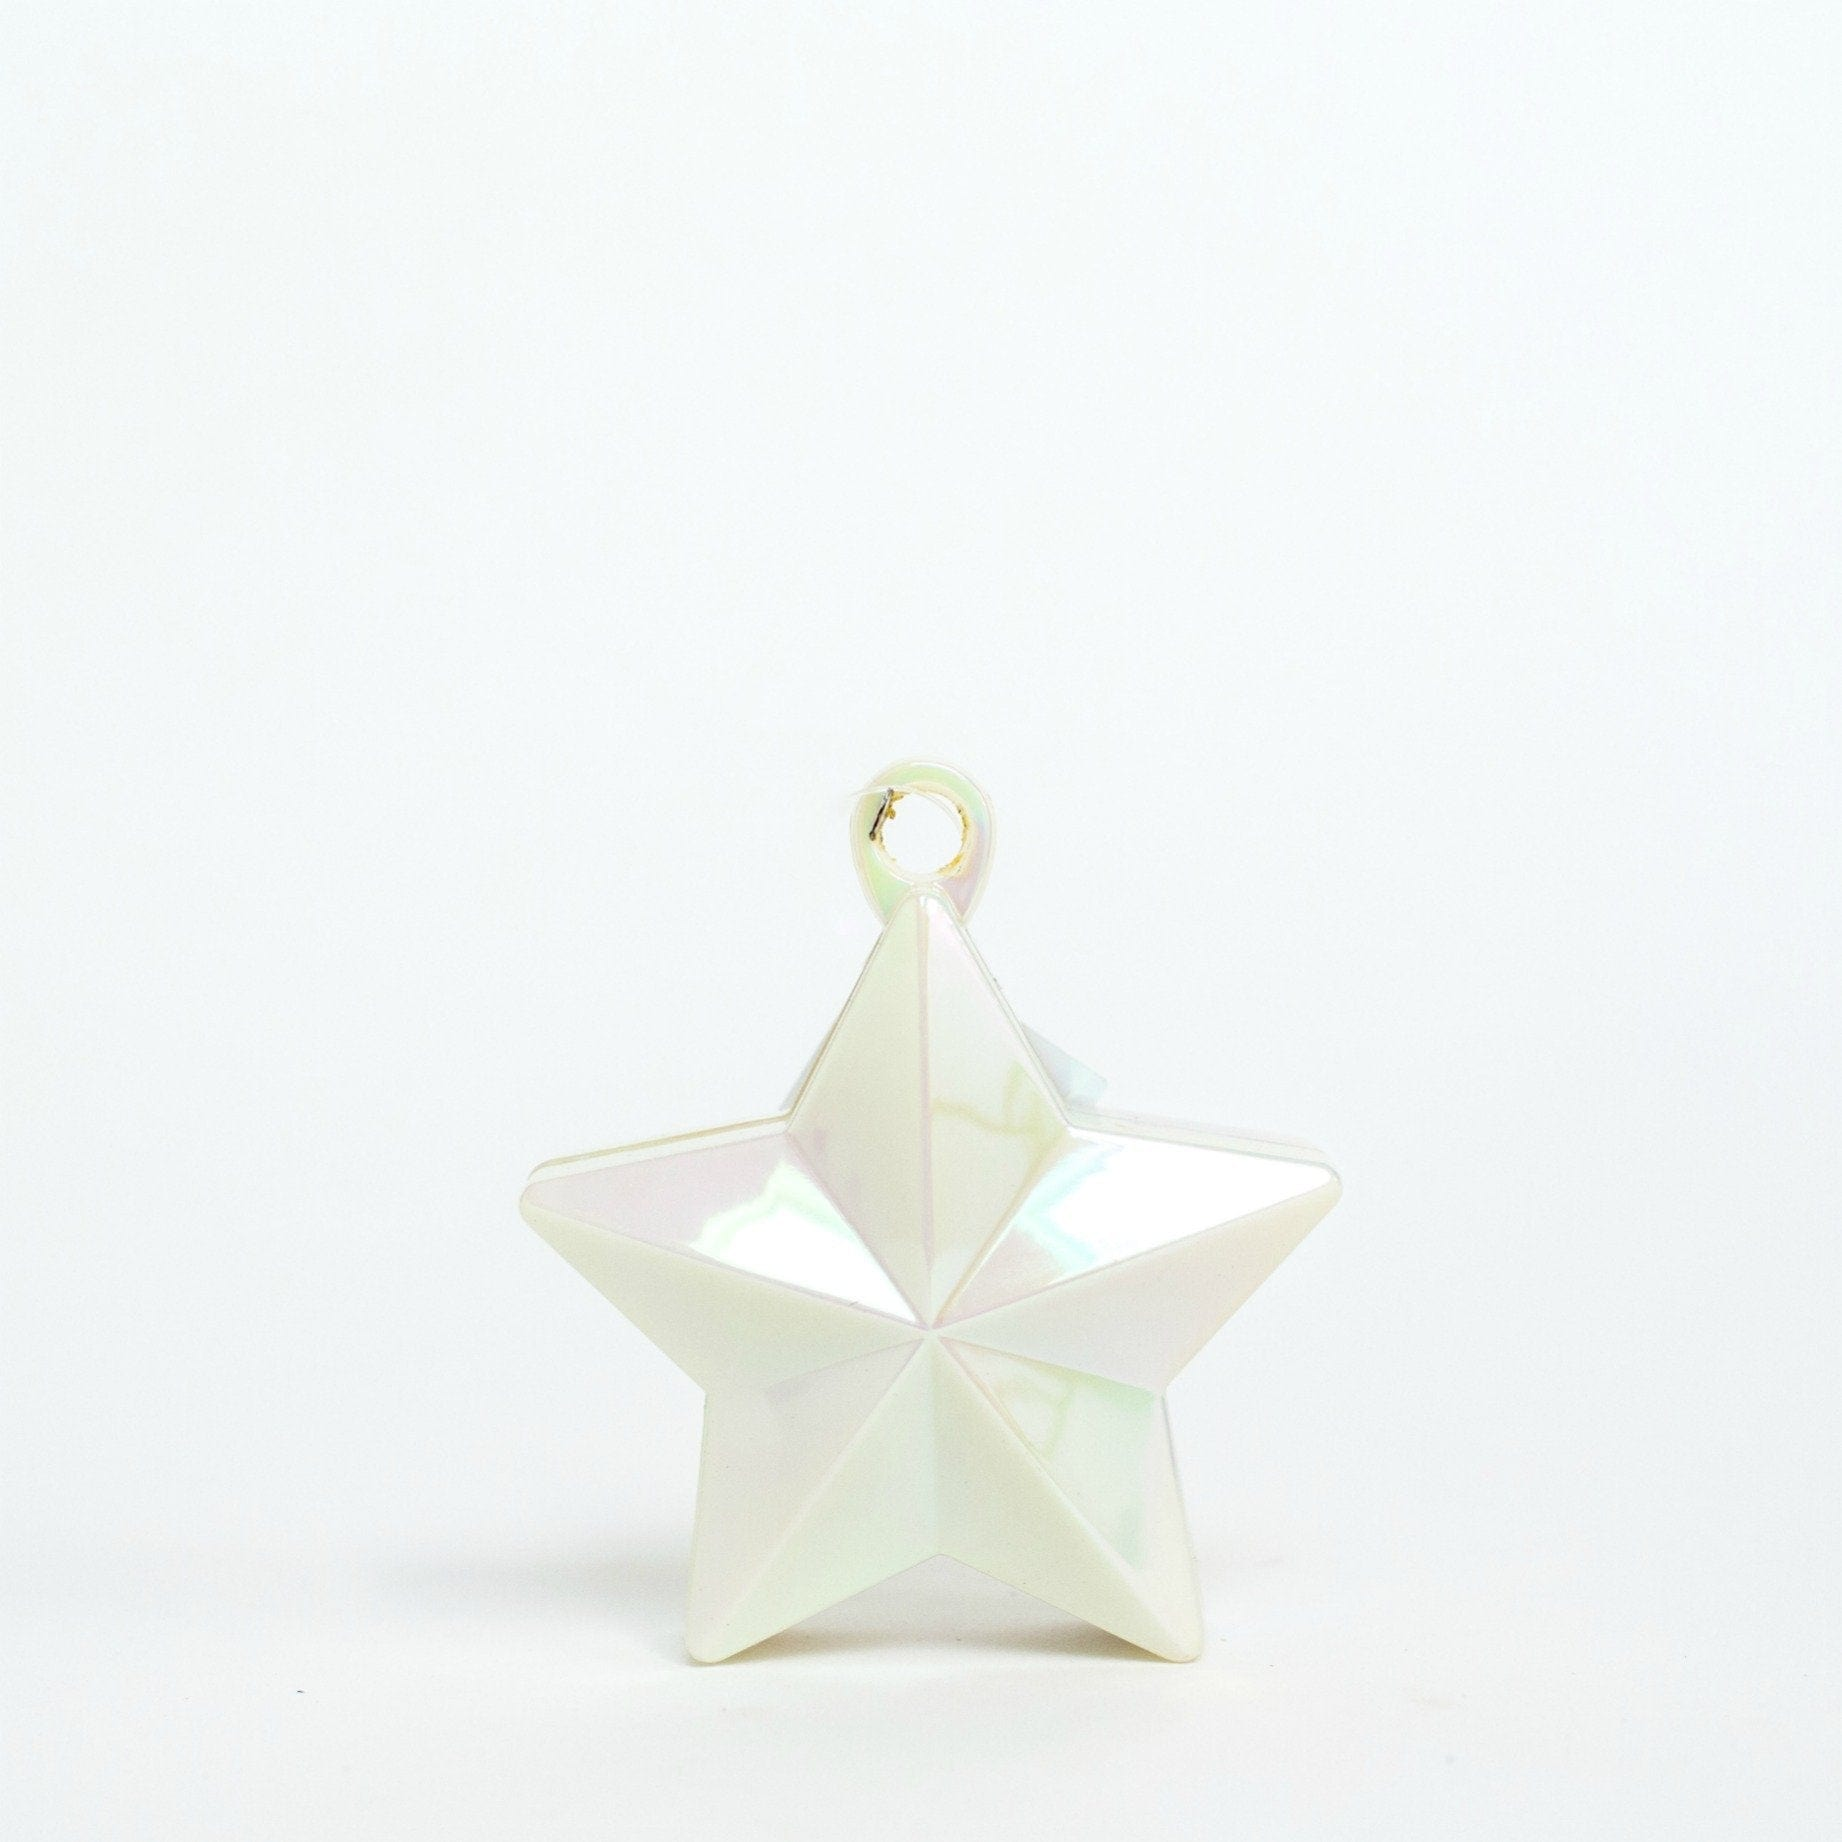 Iridescent Star Weight | Balloon Weights